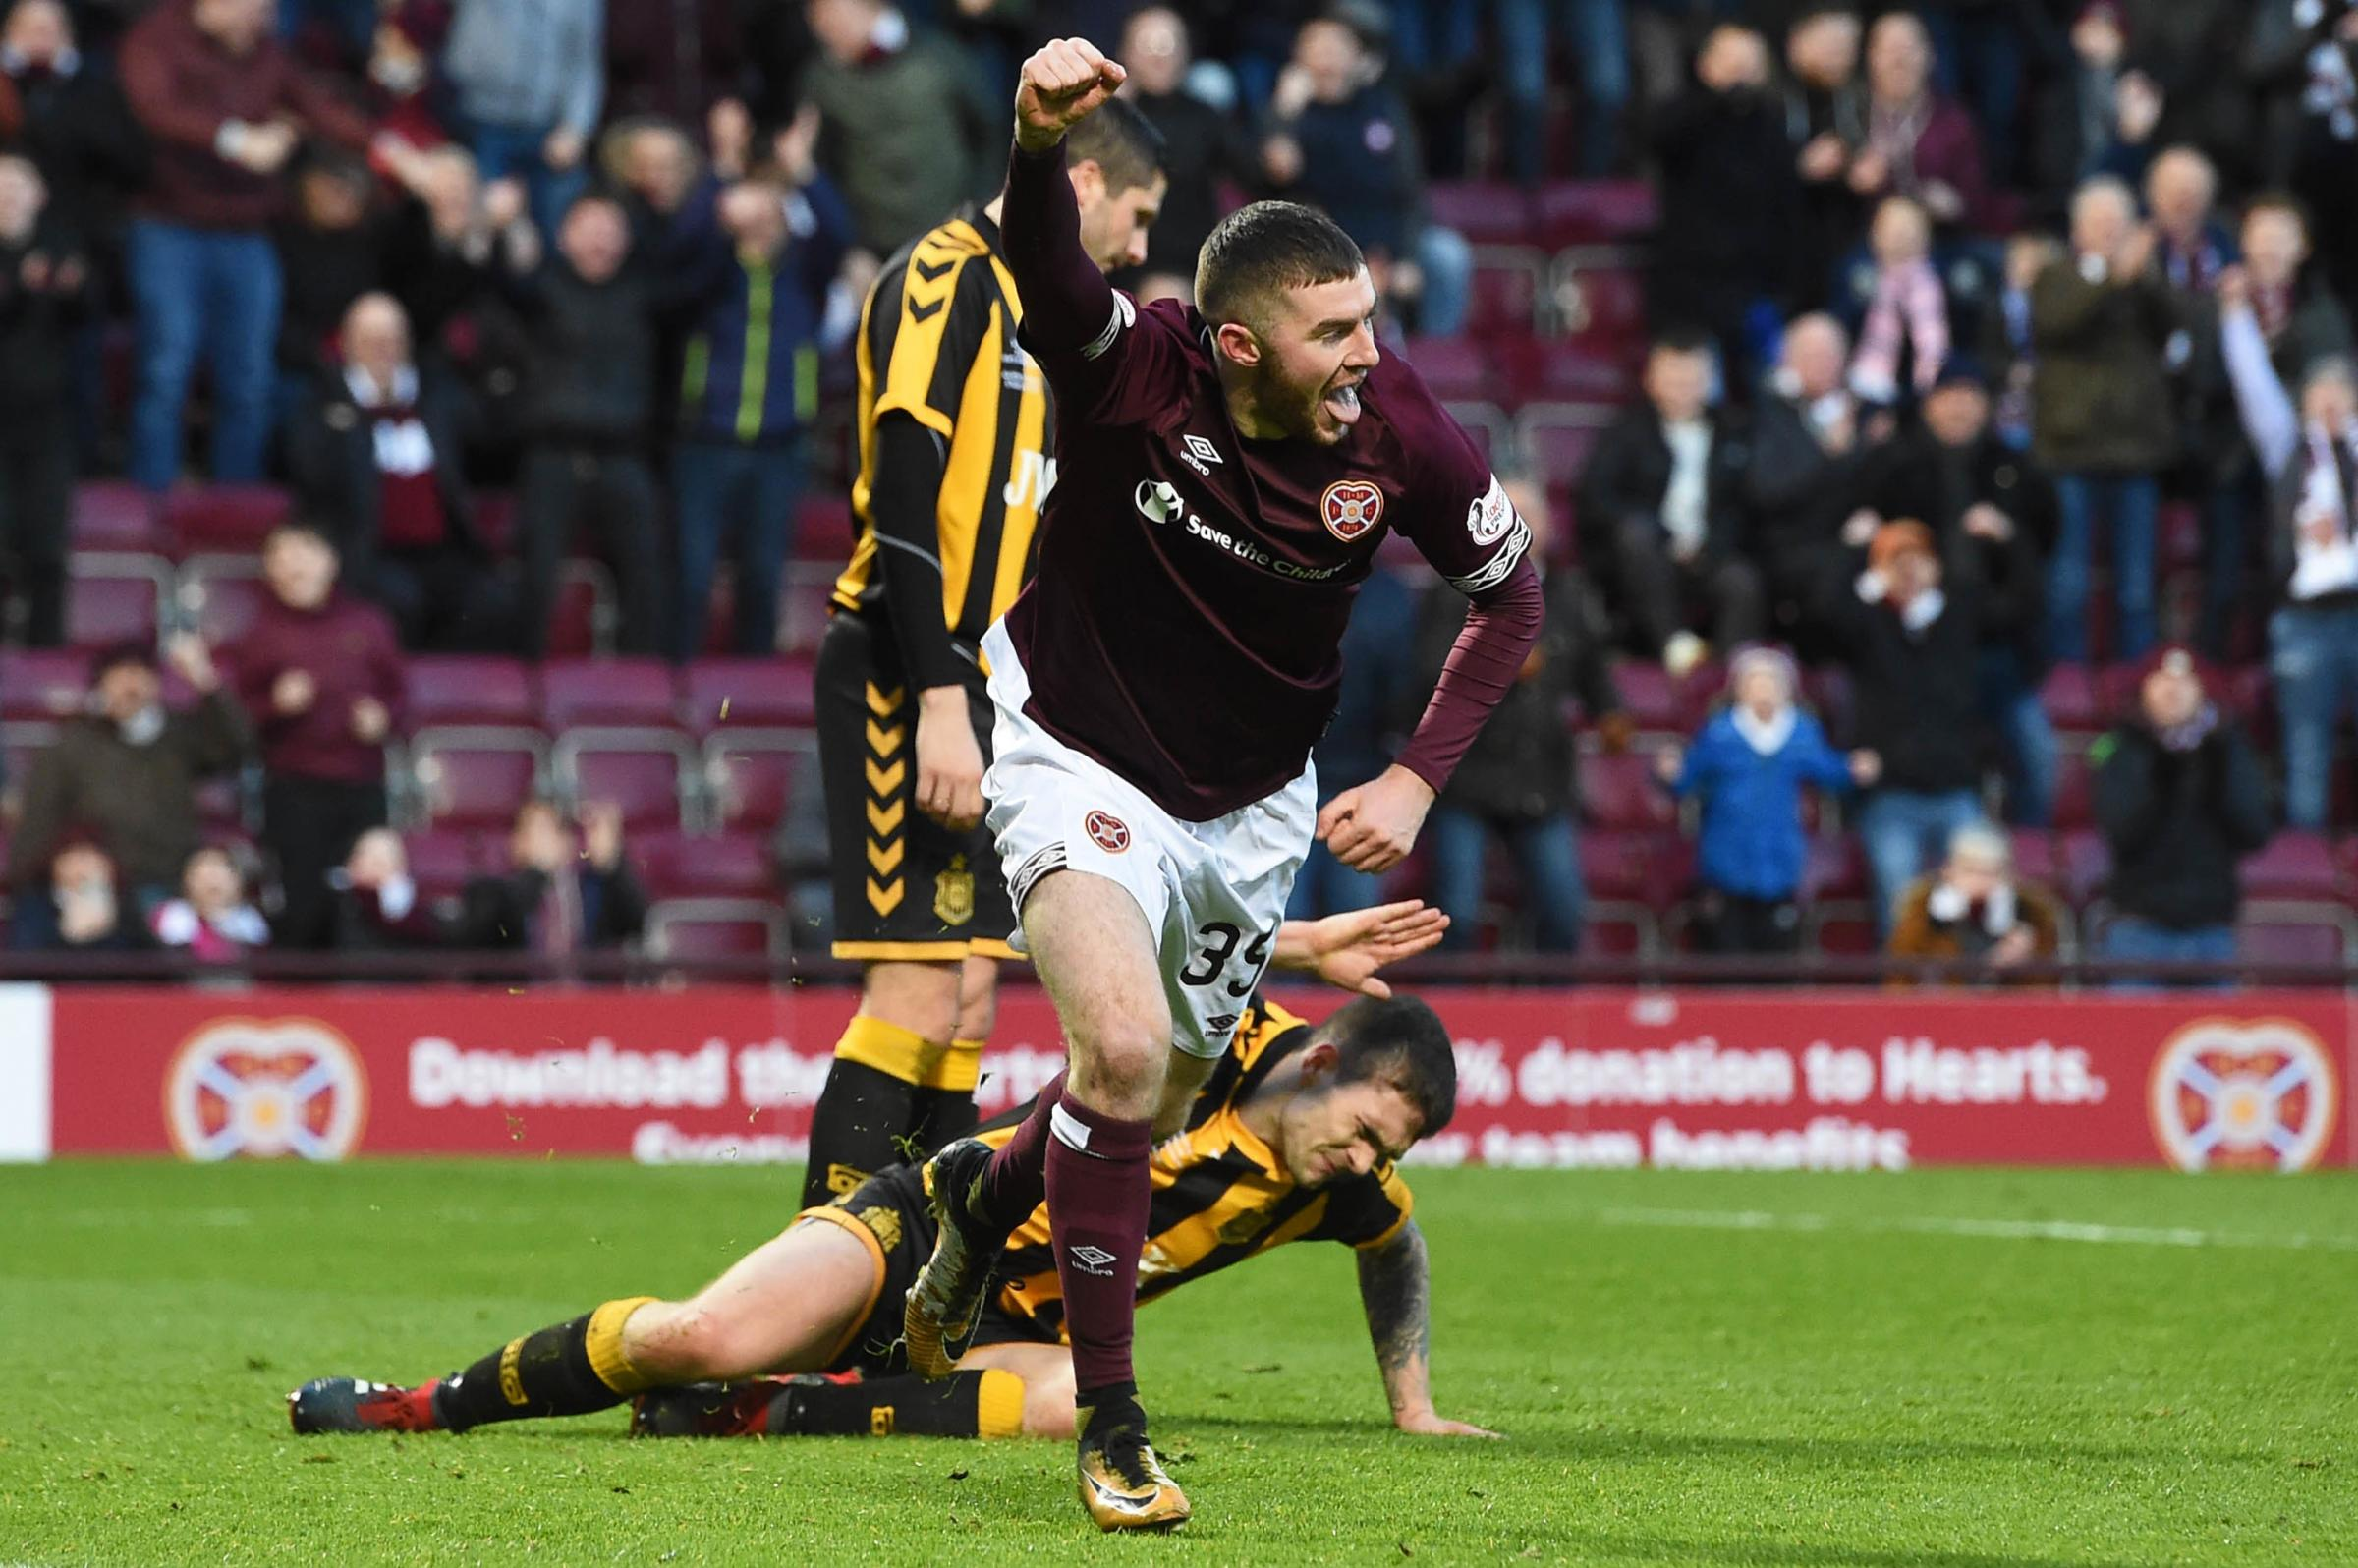 10/02/19 WILLIAM HILL SCOTTISH CUP 5TH ROUND.HEARTS v AUCHINLECK TALBOT.TYNECASTLE PARK - EDINBURGH.Aidan Kenna wheels away in delight after making it 4-0 to Hearts'..